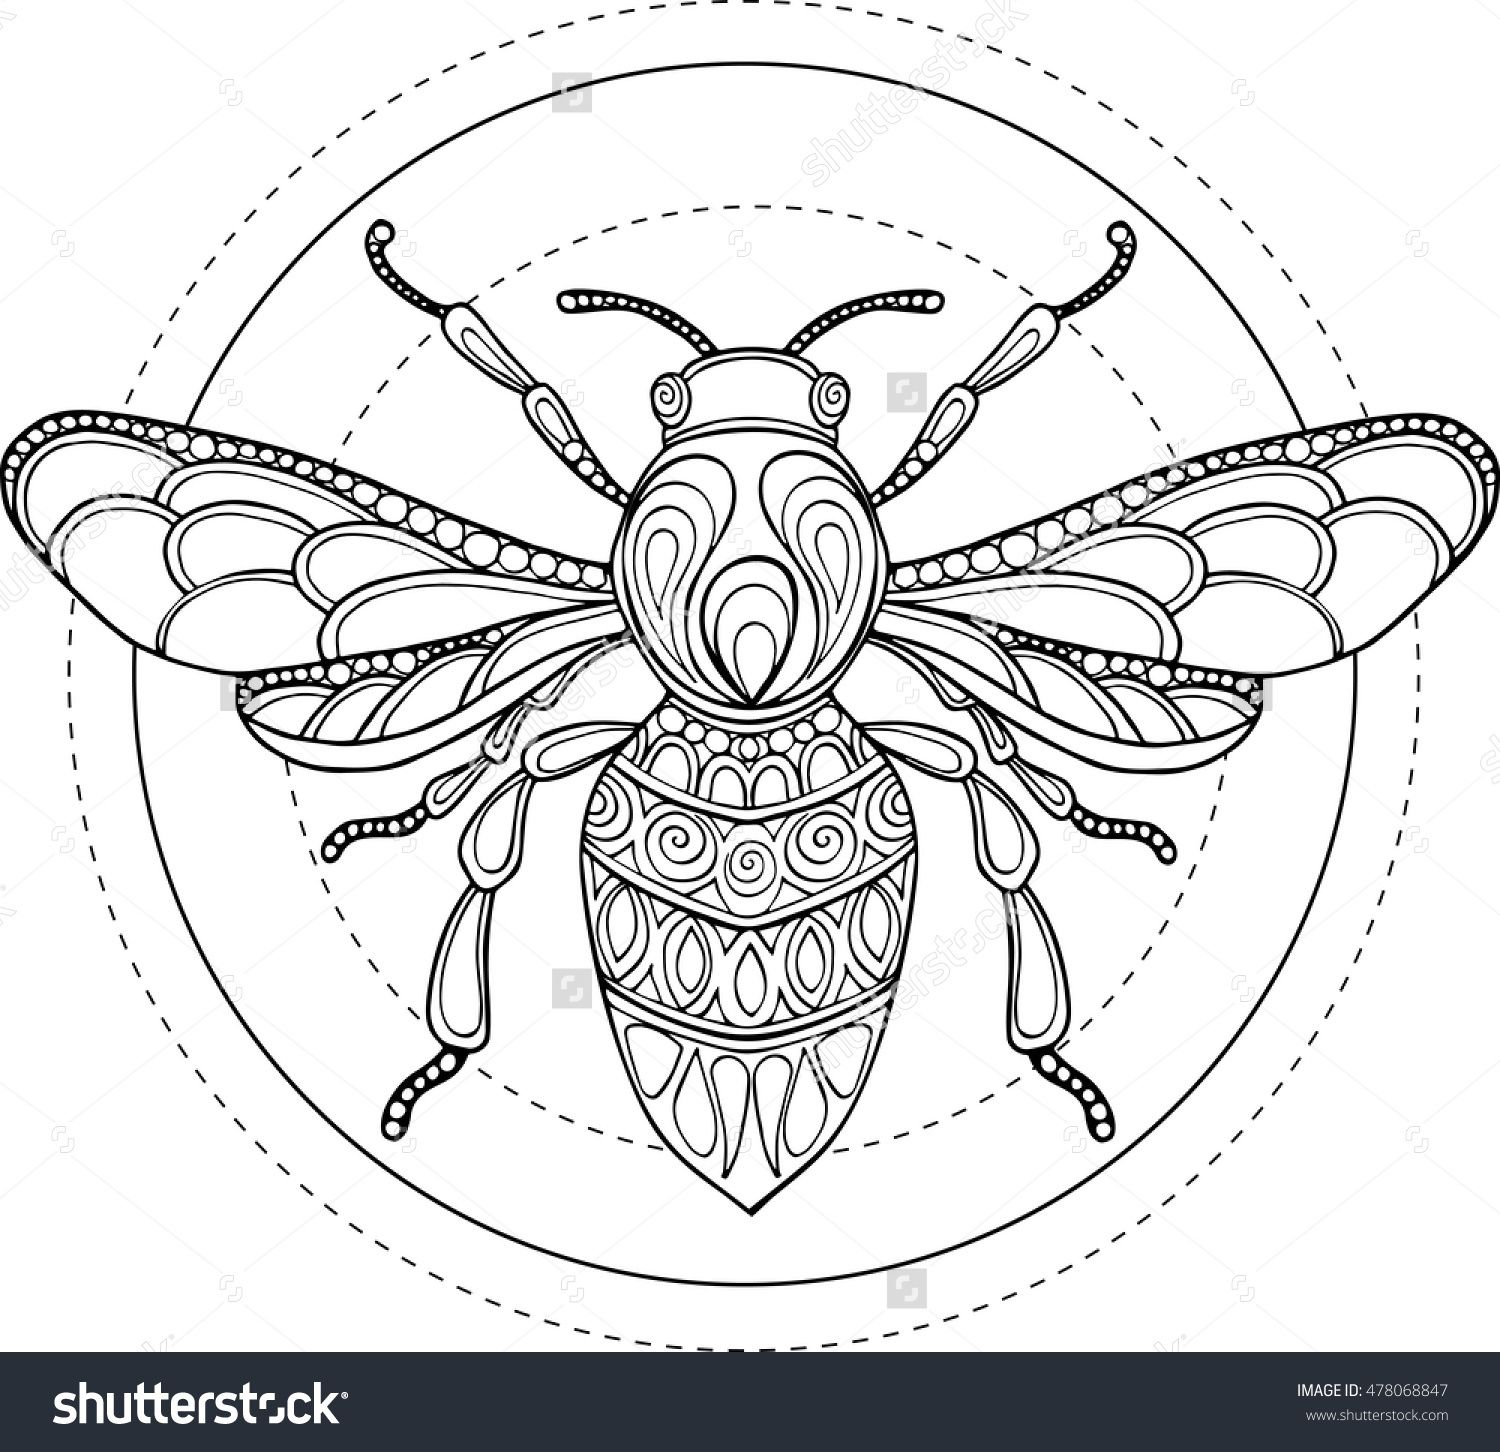 Doodle vector hand drawn bee illustration. Ornate decorative bee ...